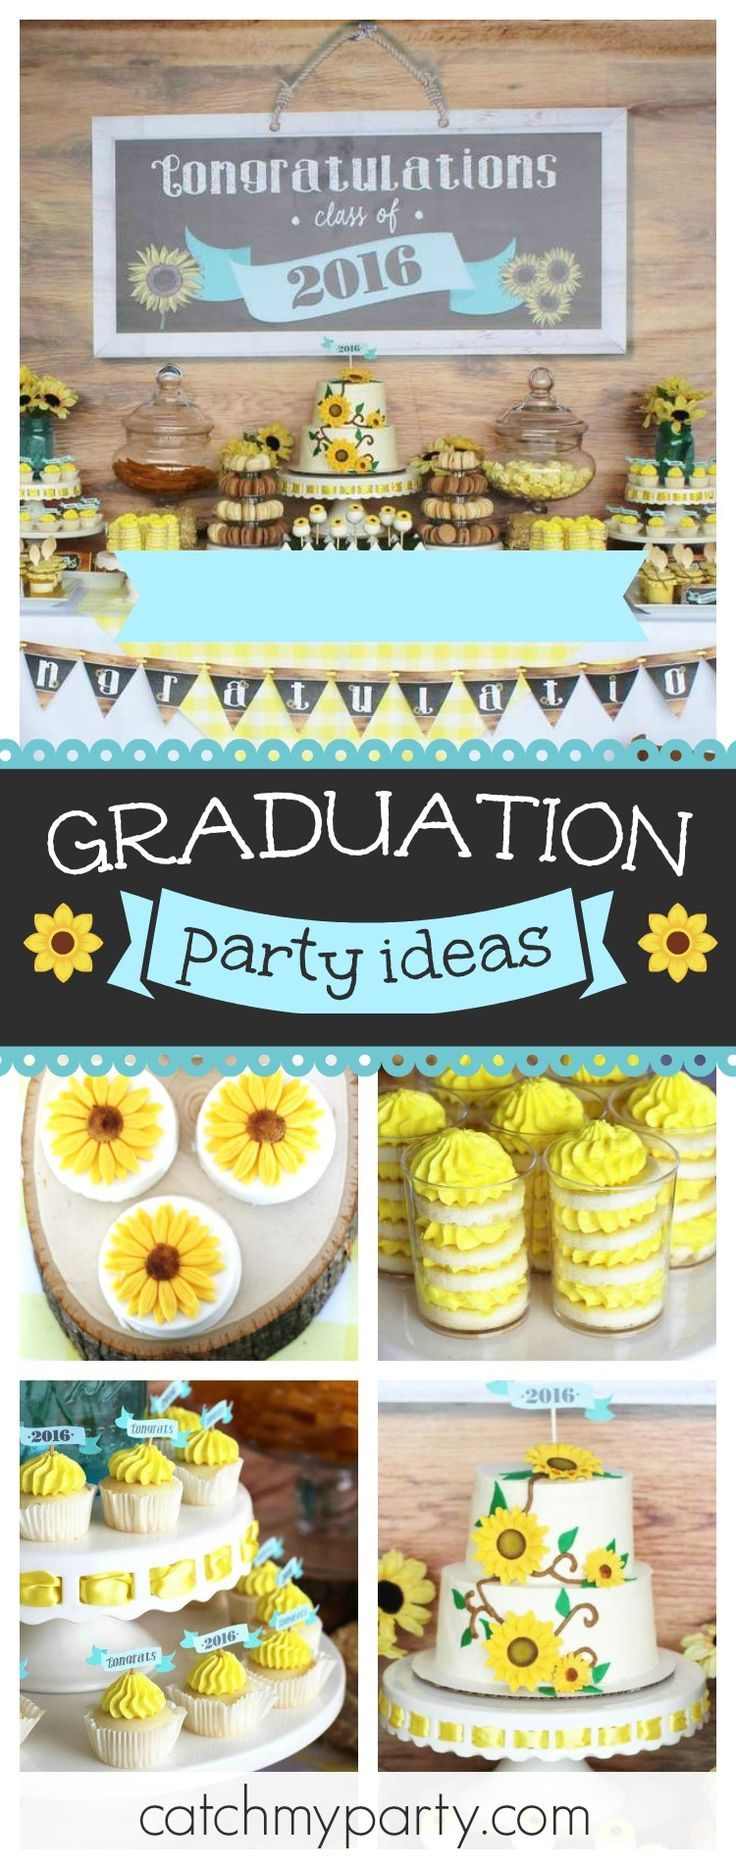 "Graduation Ceremony ""Country themed Graduation Party by Ashleigh Nicole Events"""